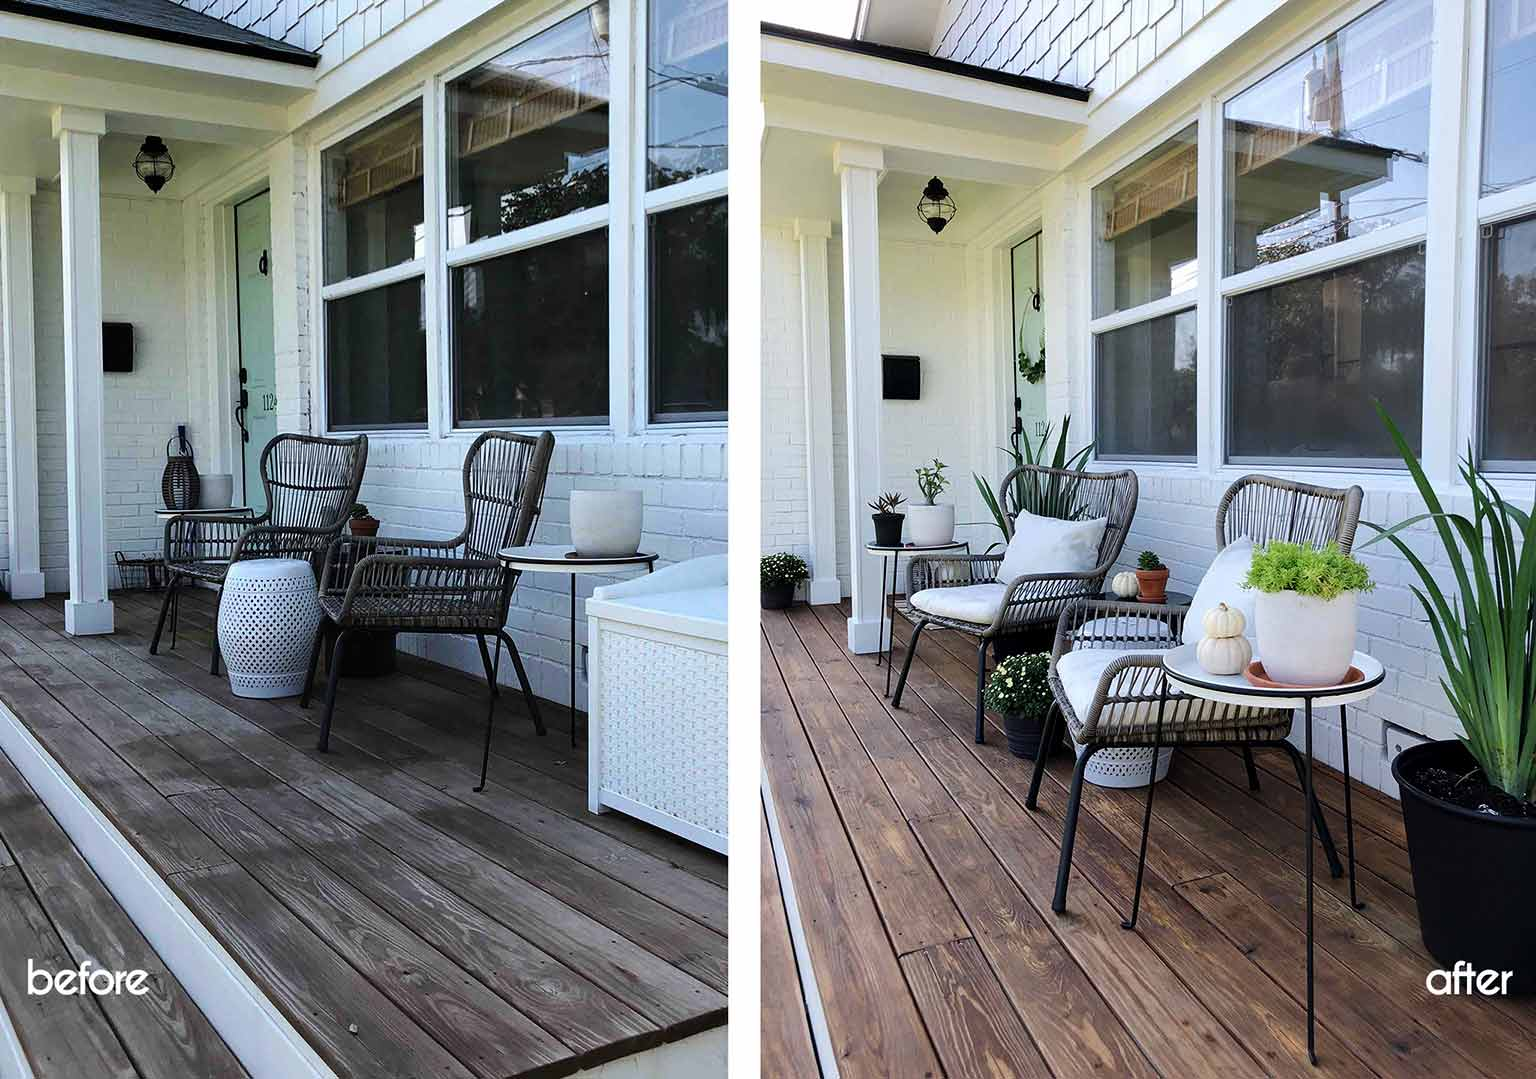 Before and after - Front porch fall makeover reveal - That Homebird Life Blog